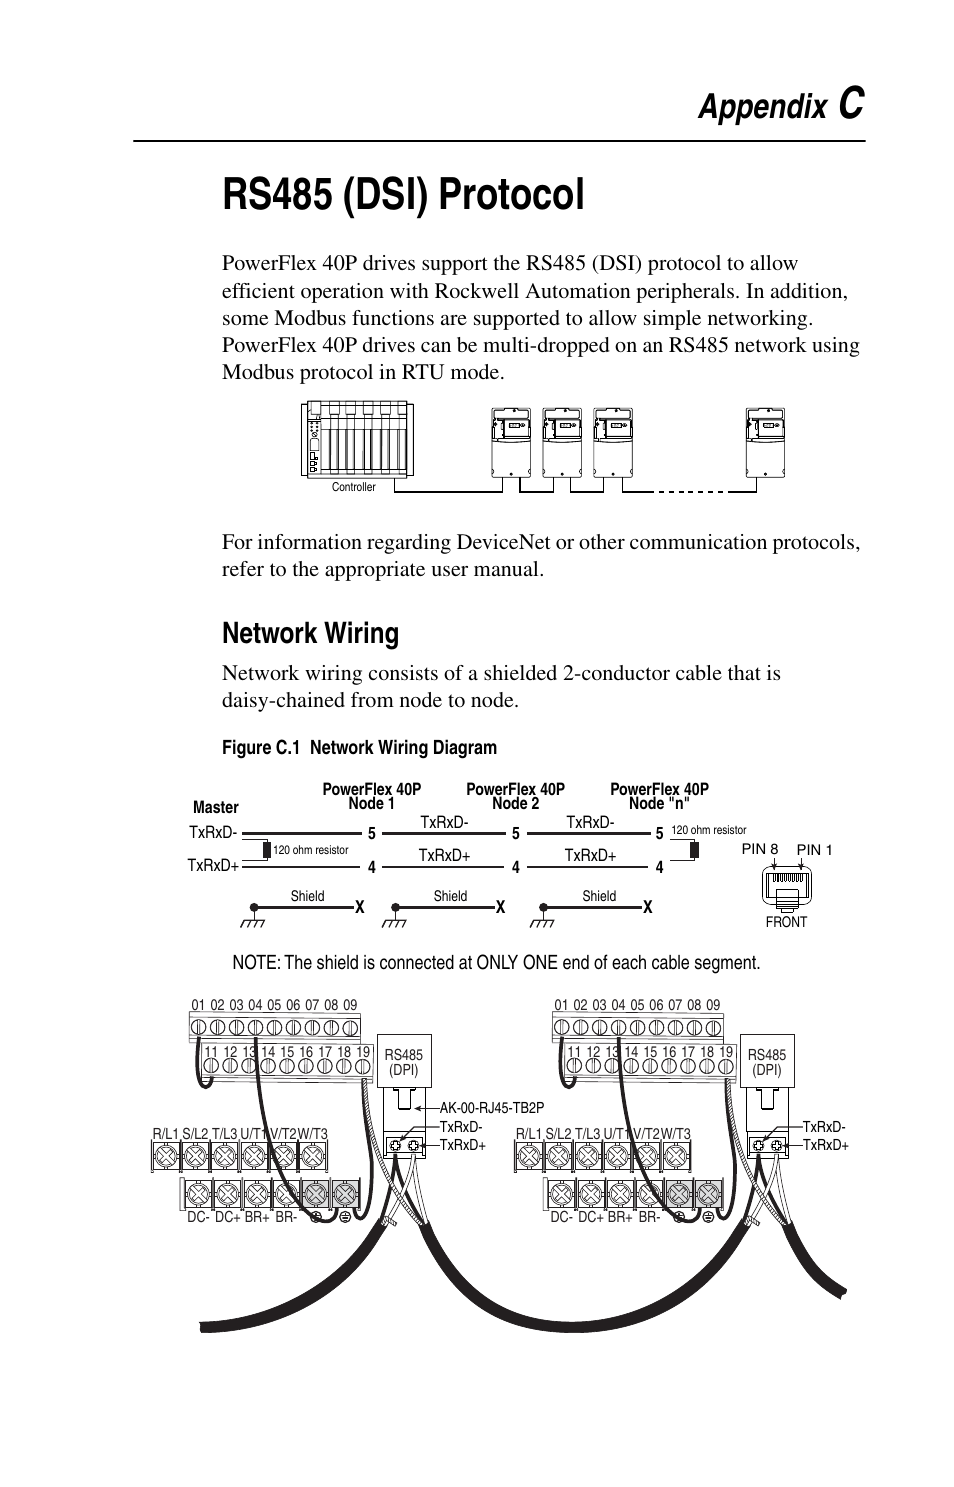 powerflex 40 ethernet wiring diagram | wiring diagram on powerflex 400  wiring diagram, allen bradley